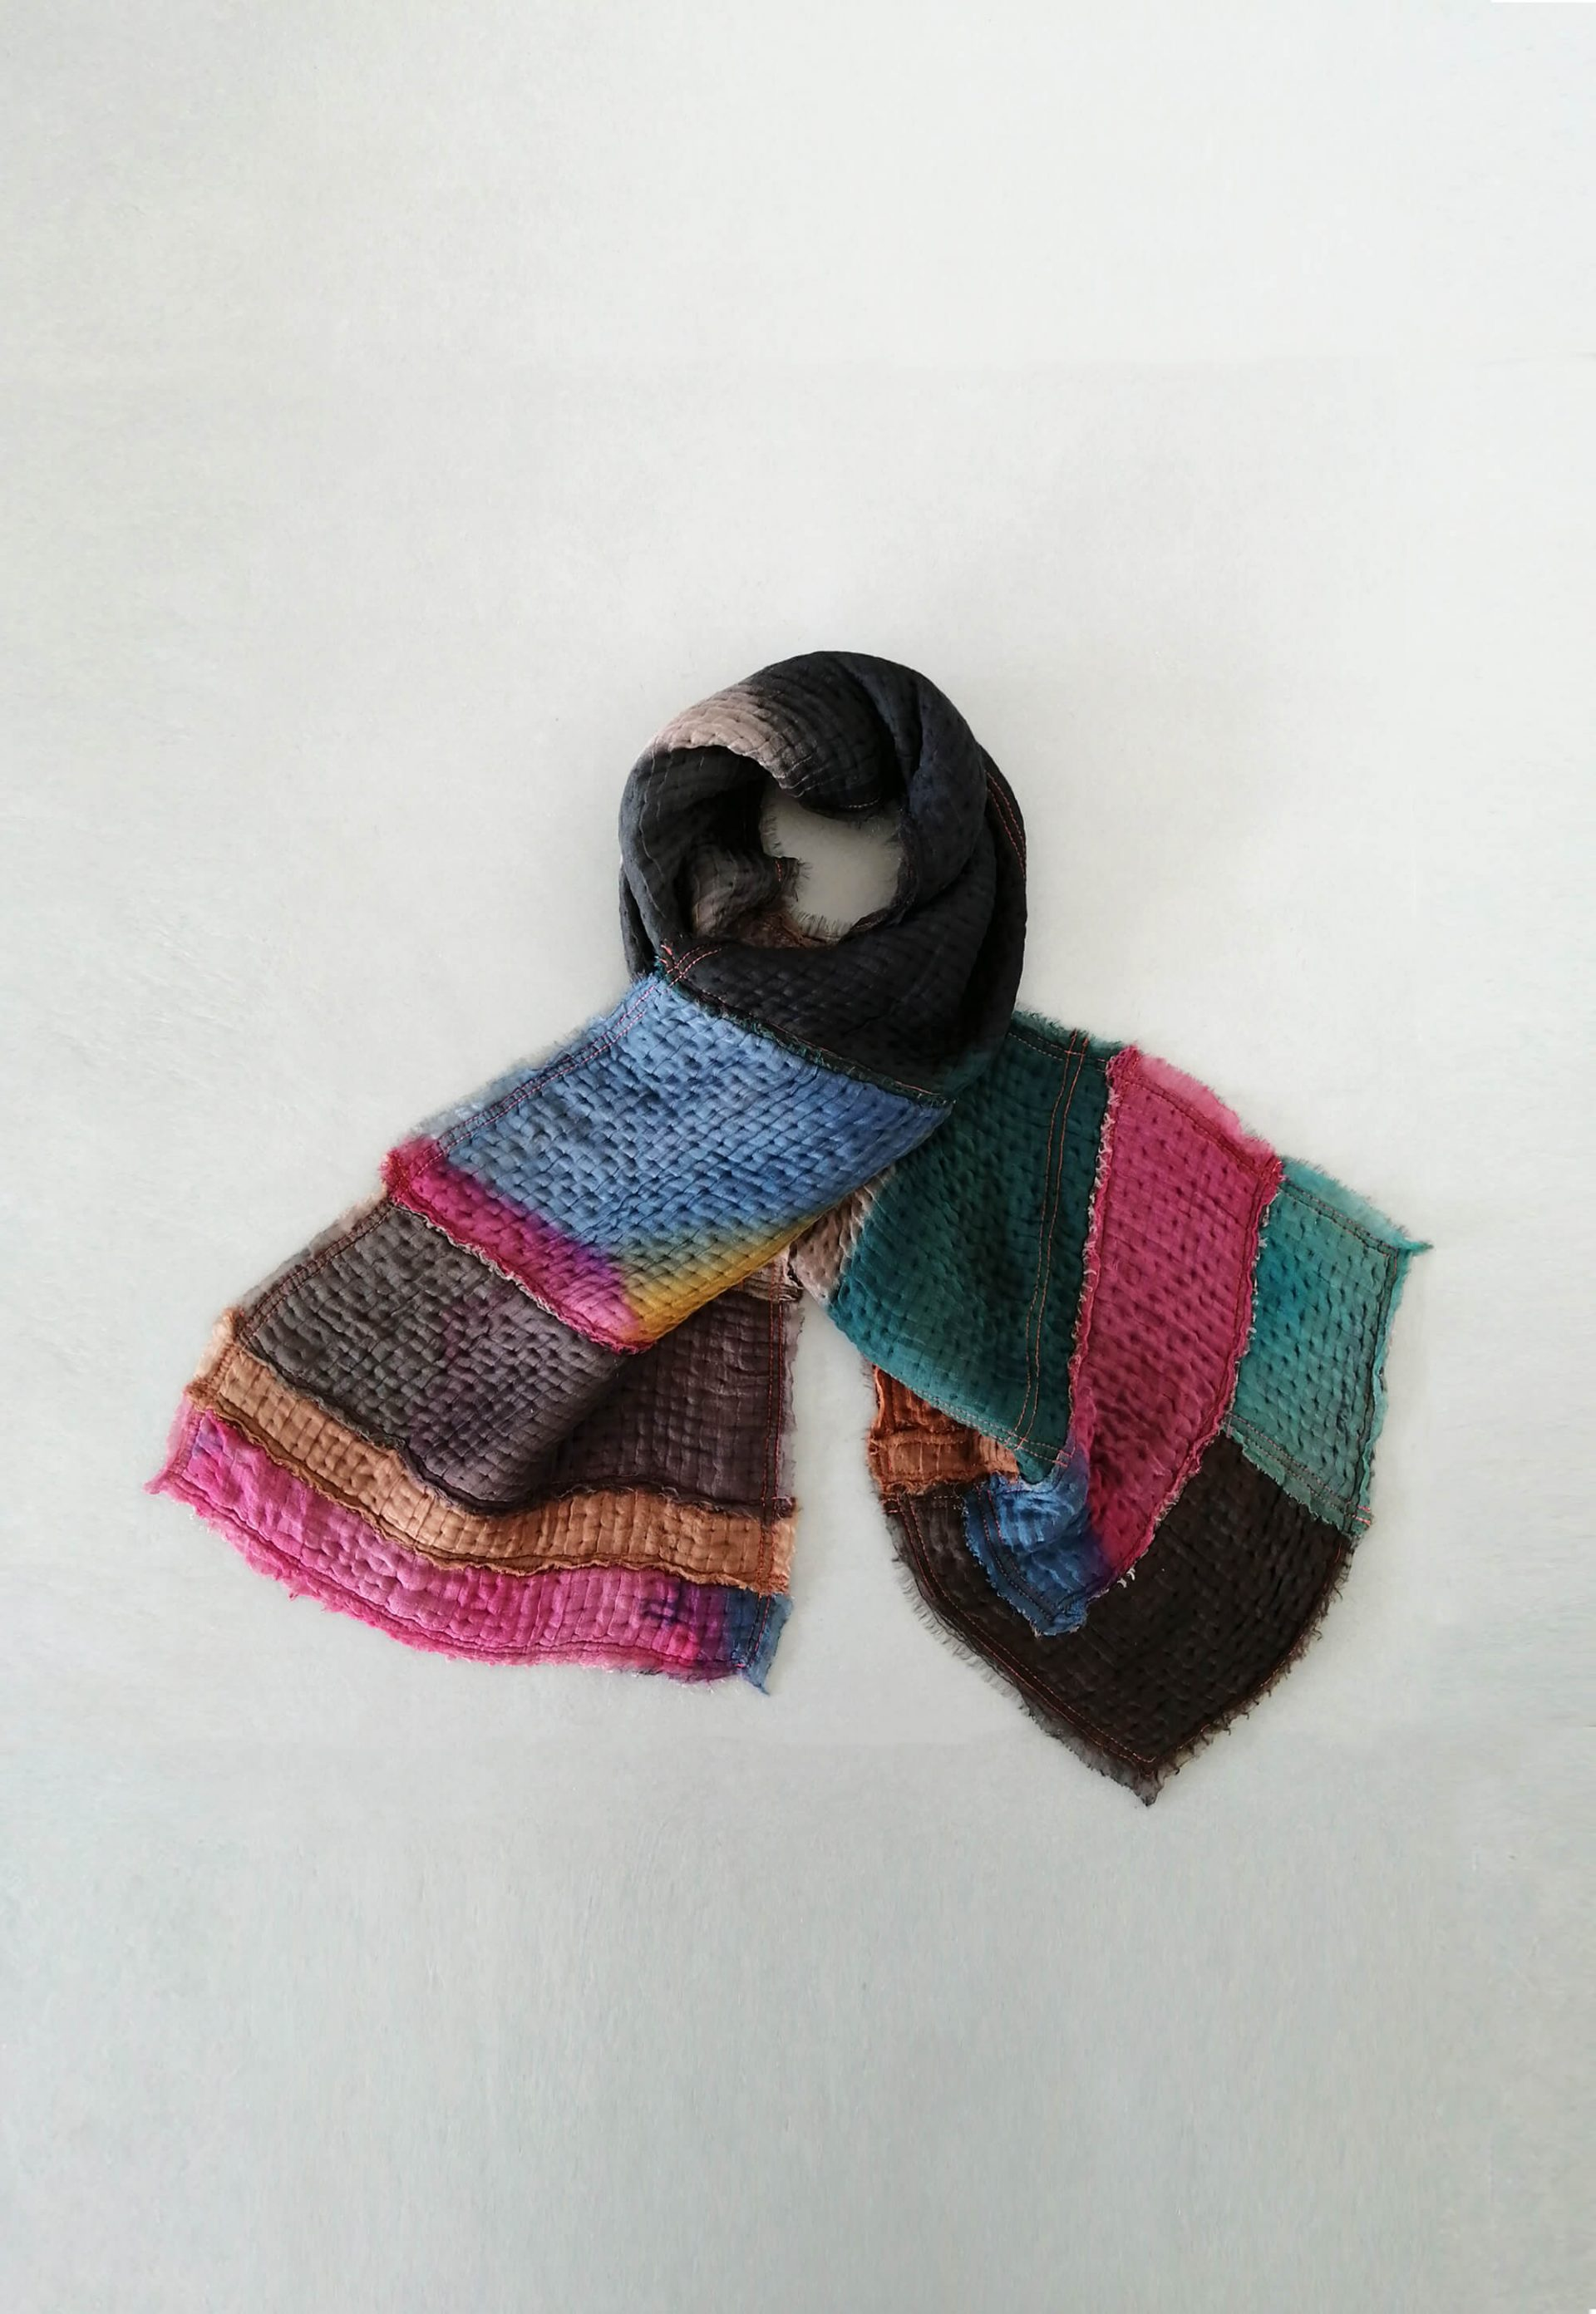 Handmade patchwork shawl in smoked colors